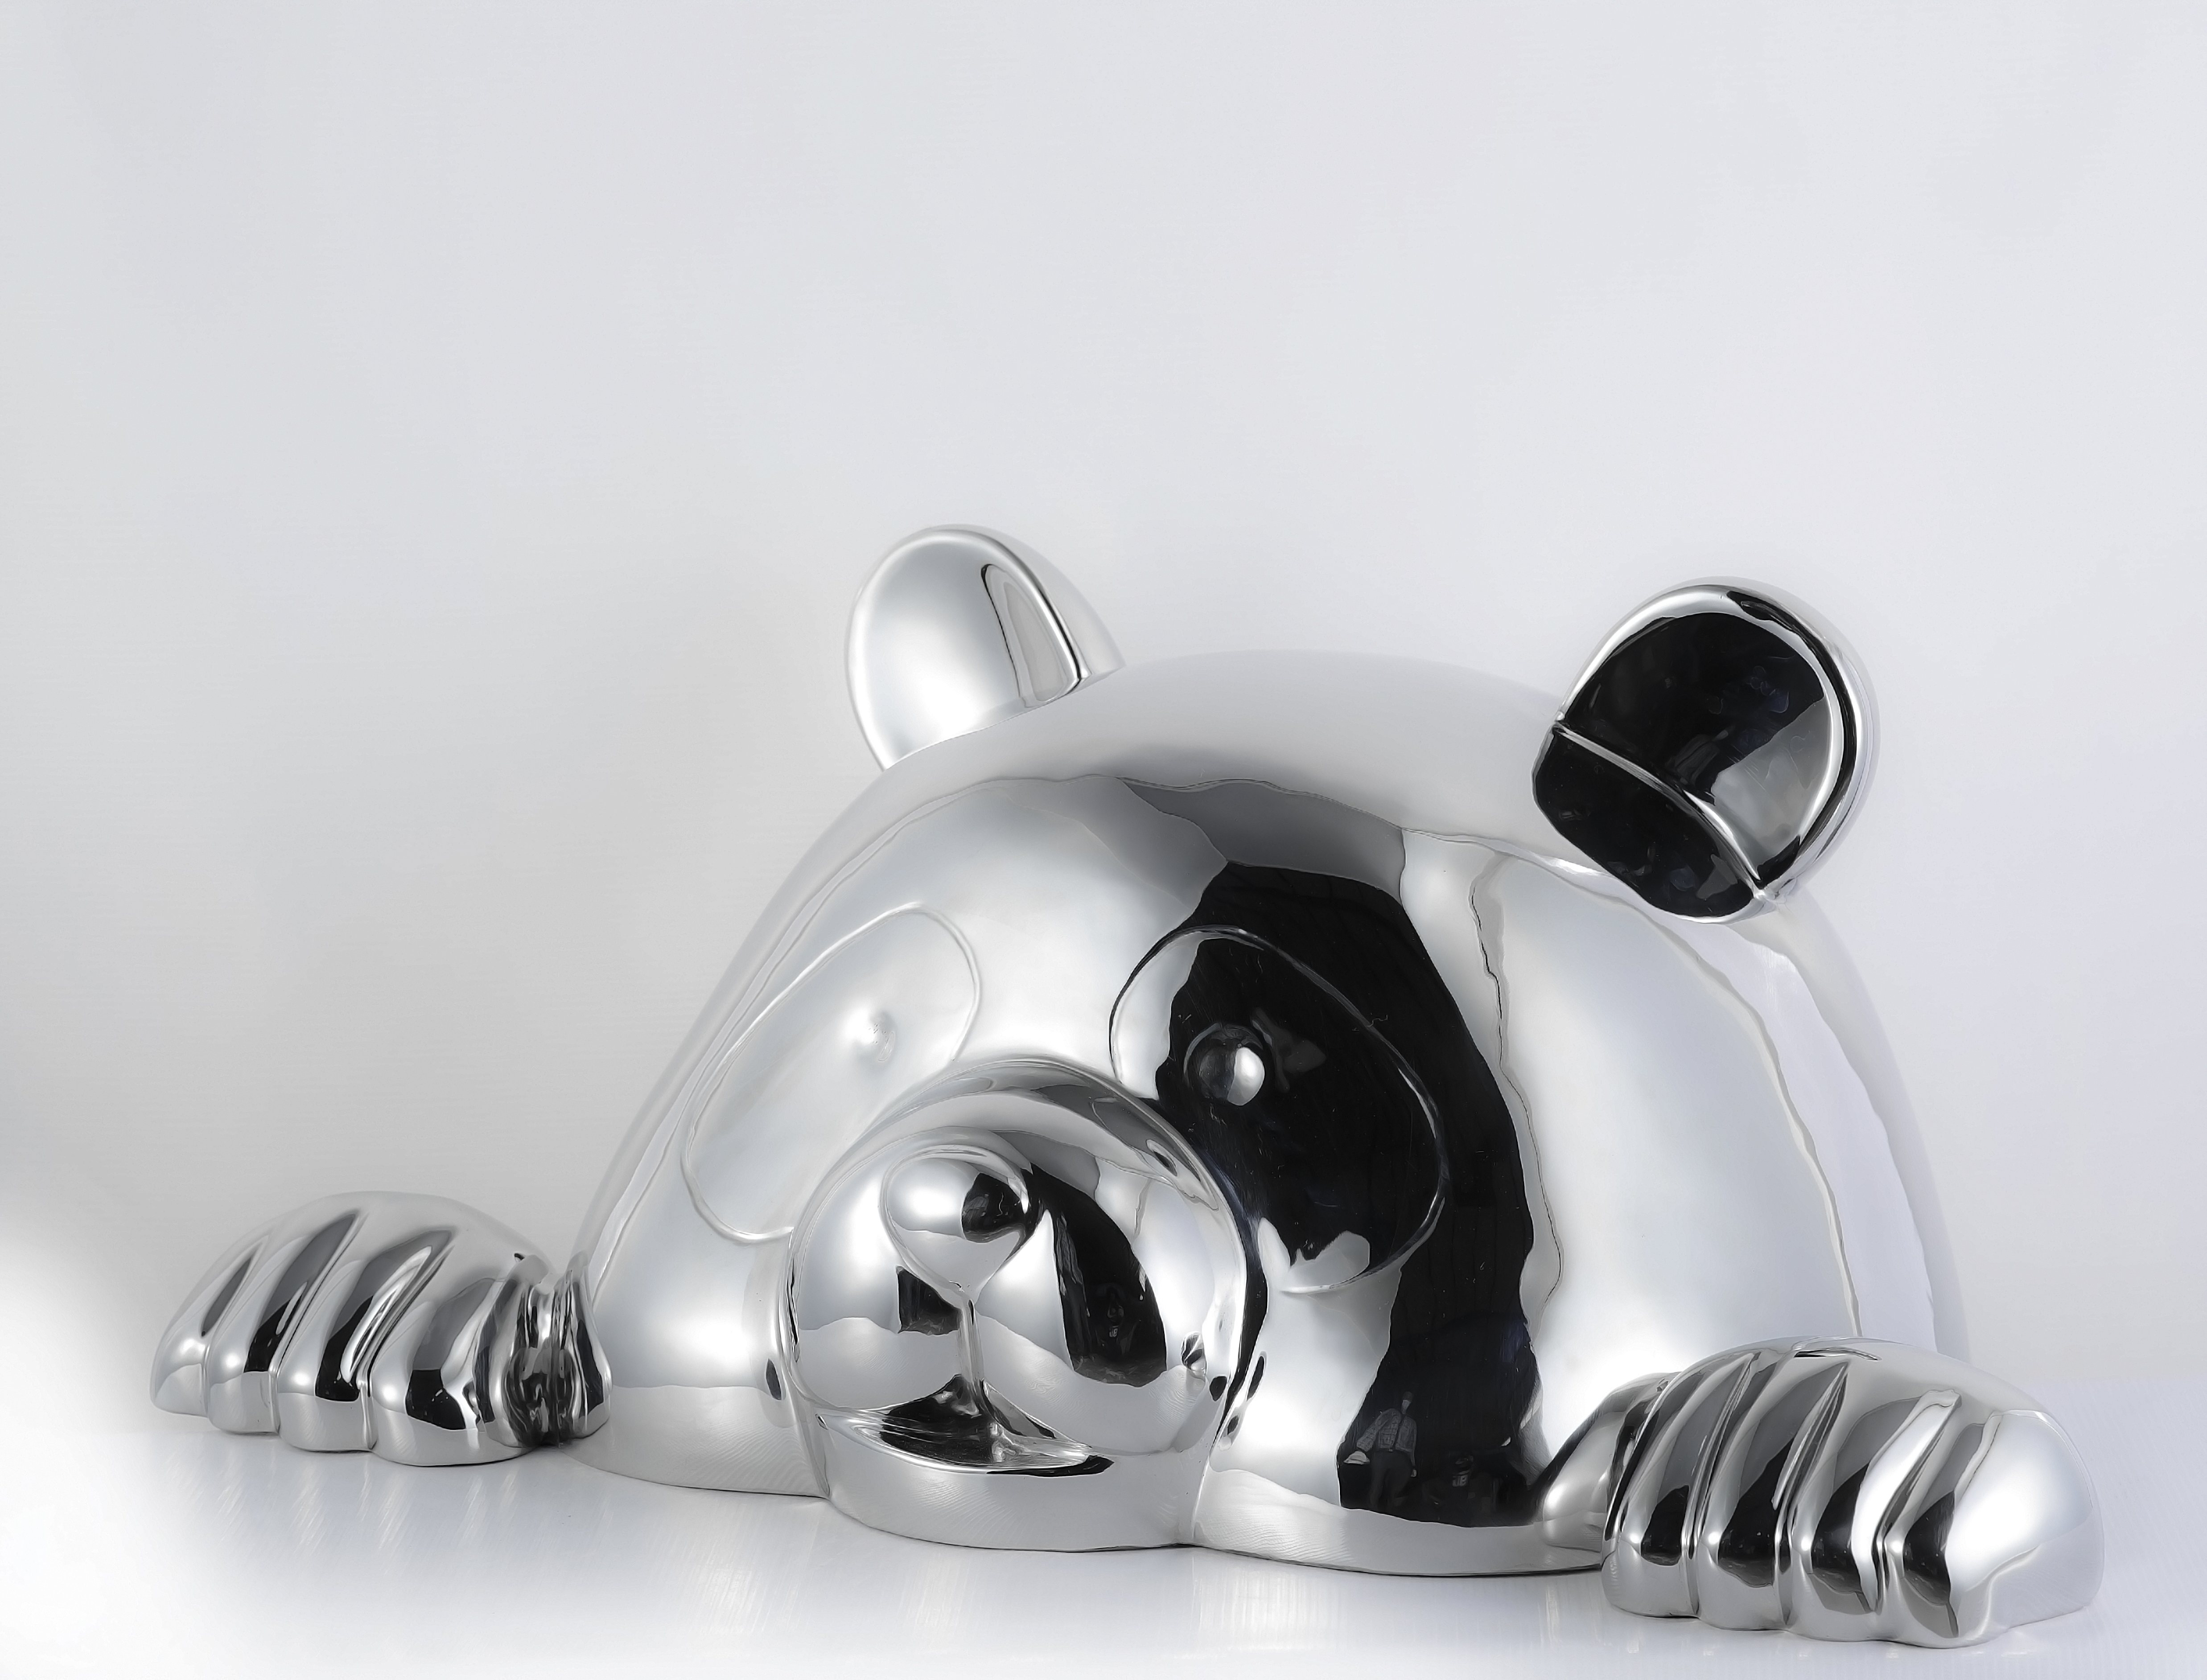 """HELLOPANDASAN"" 30cm, 2015 Stainless Steel Polished 11 4/5 × 27 3/5 × 15 7/10 in 30 × 70 × 40 cm Edition of 8"